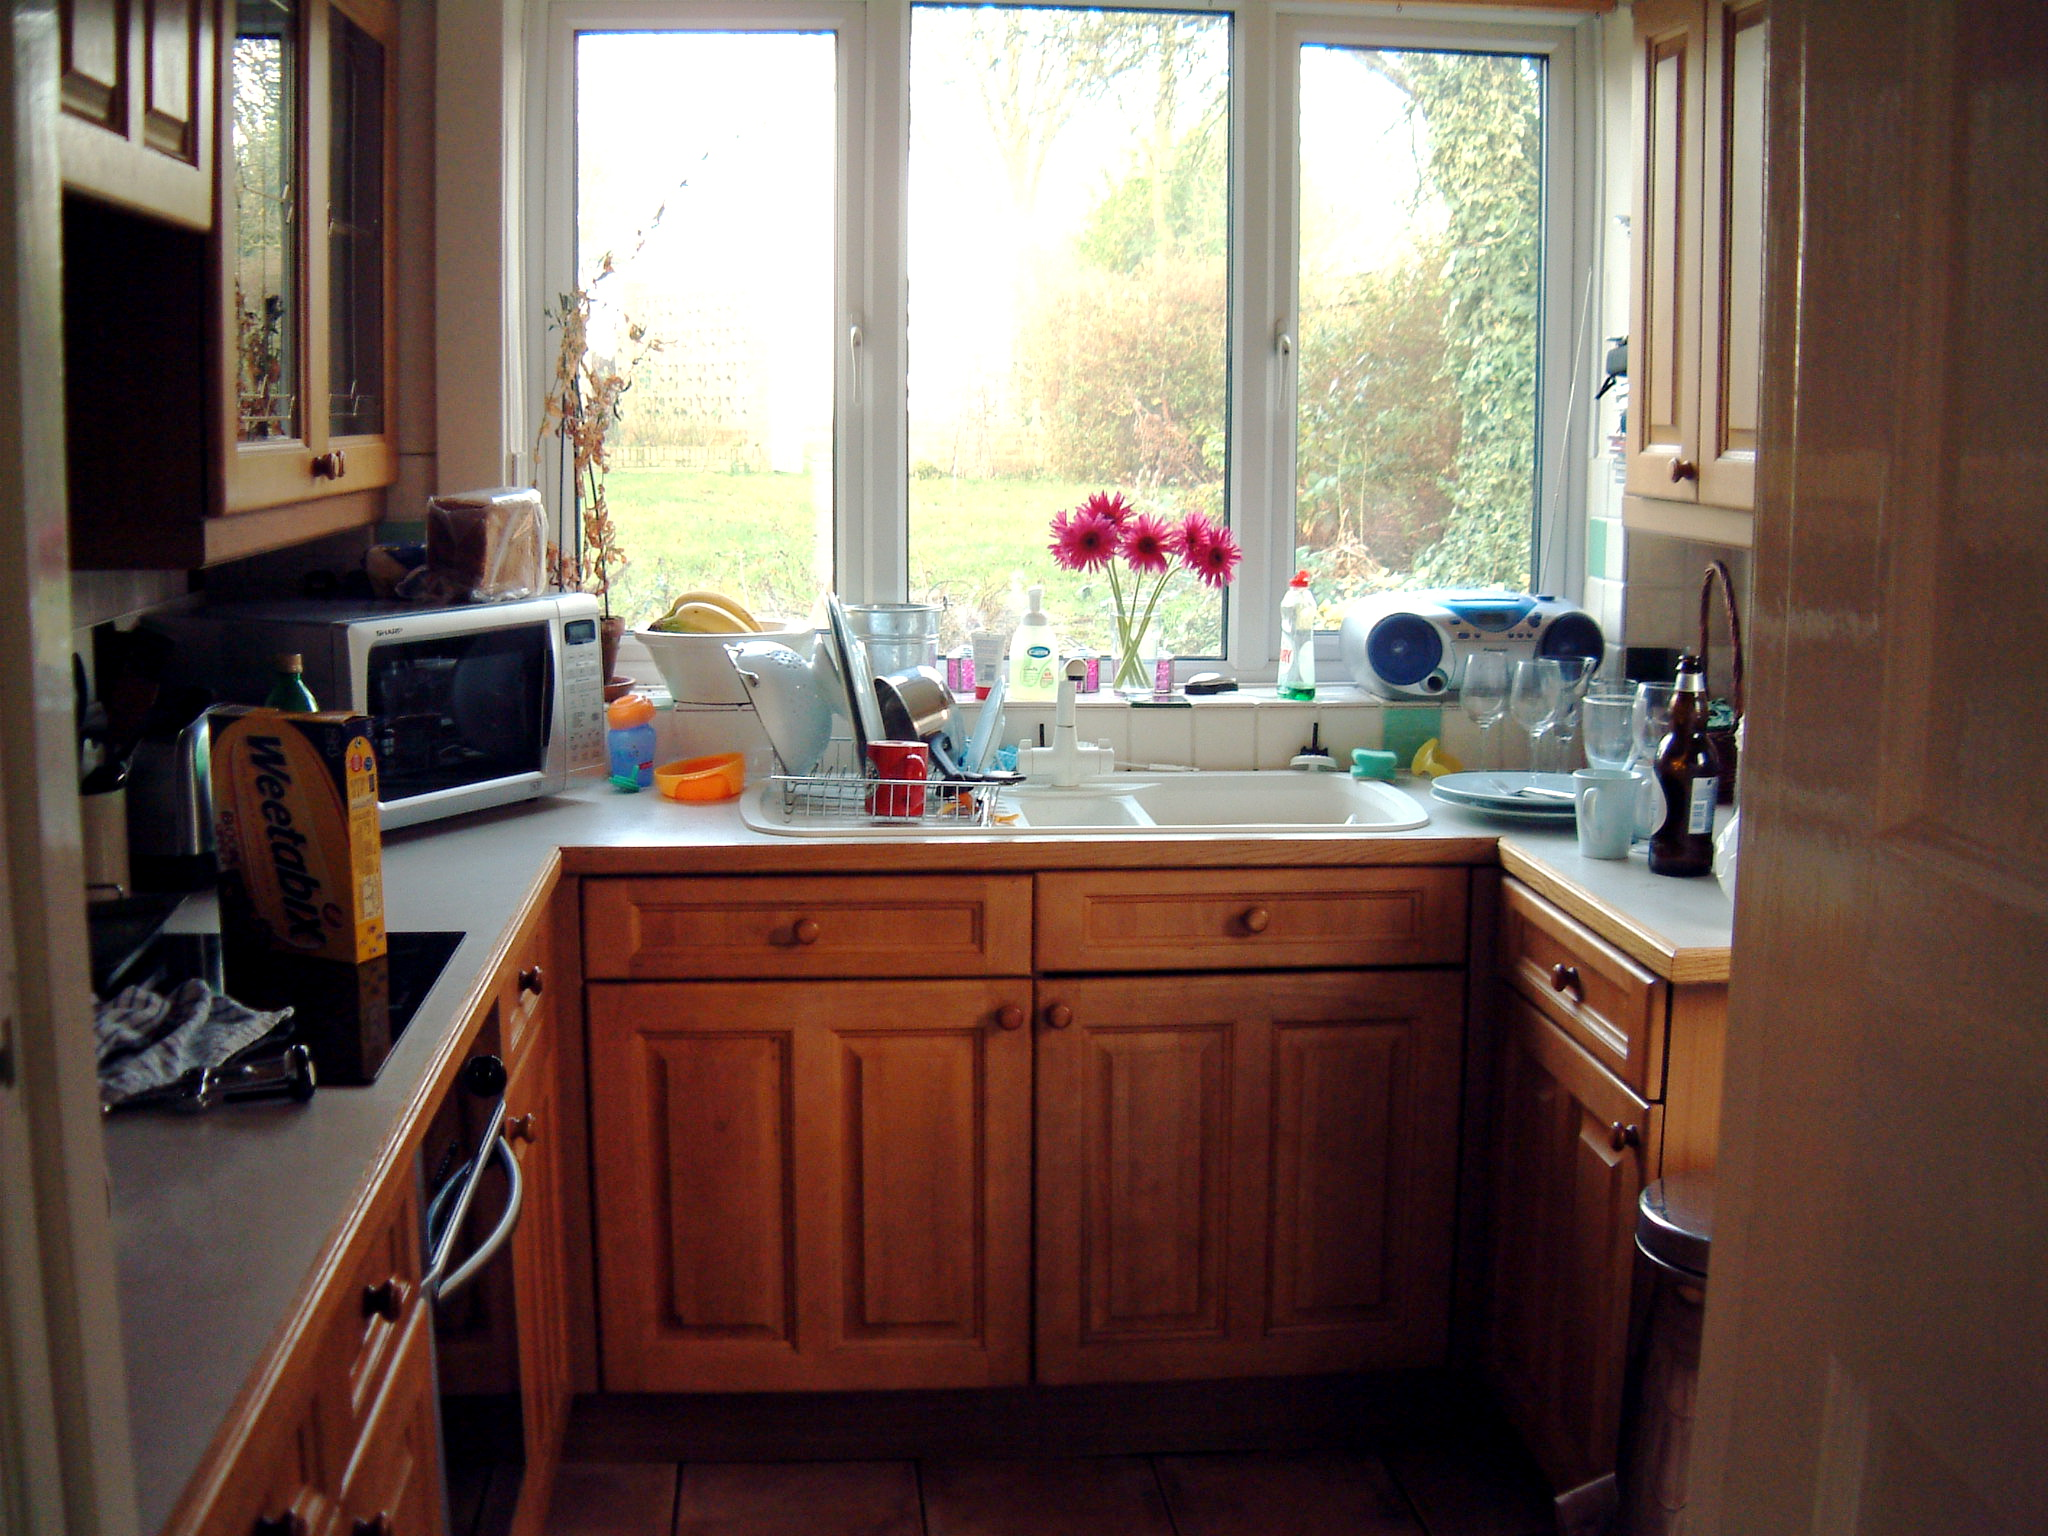 Space saving tips for small kitchens interior for Small kitchen cabinets